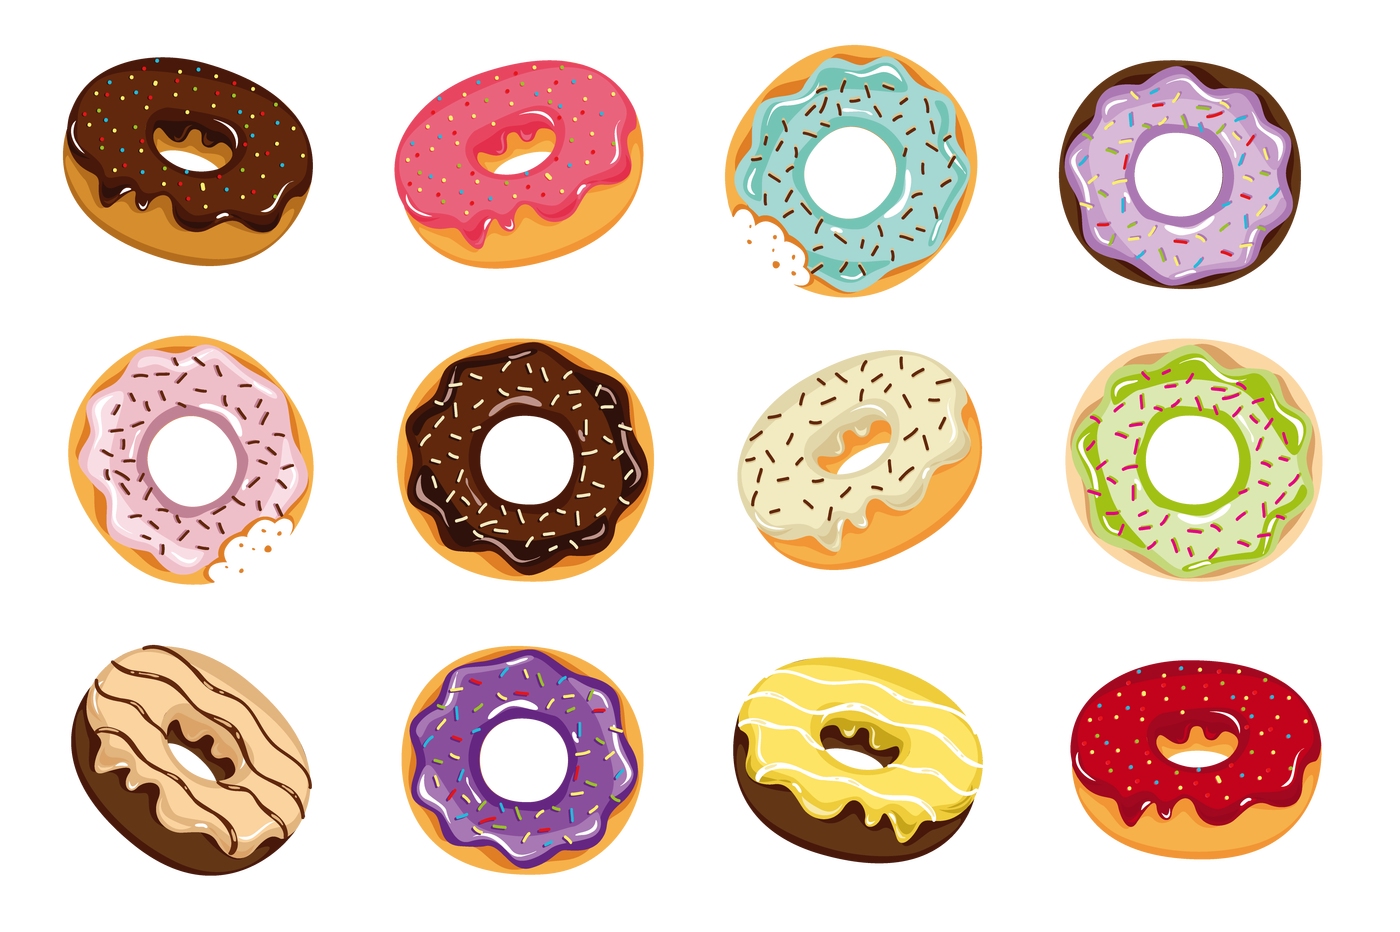 Donut clipart clear background. Doughnut png images transparent